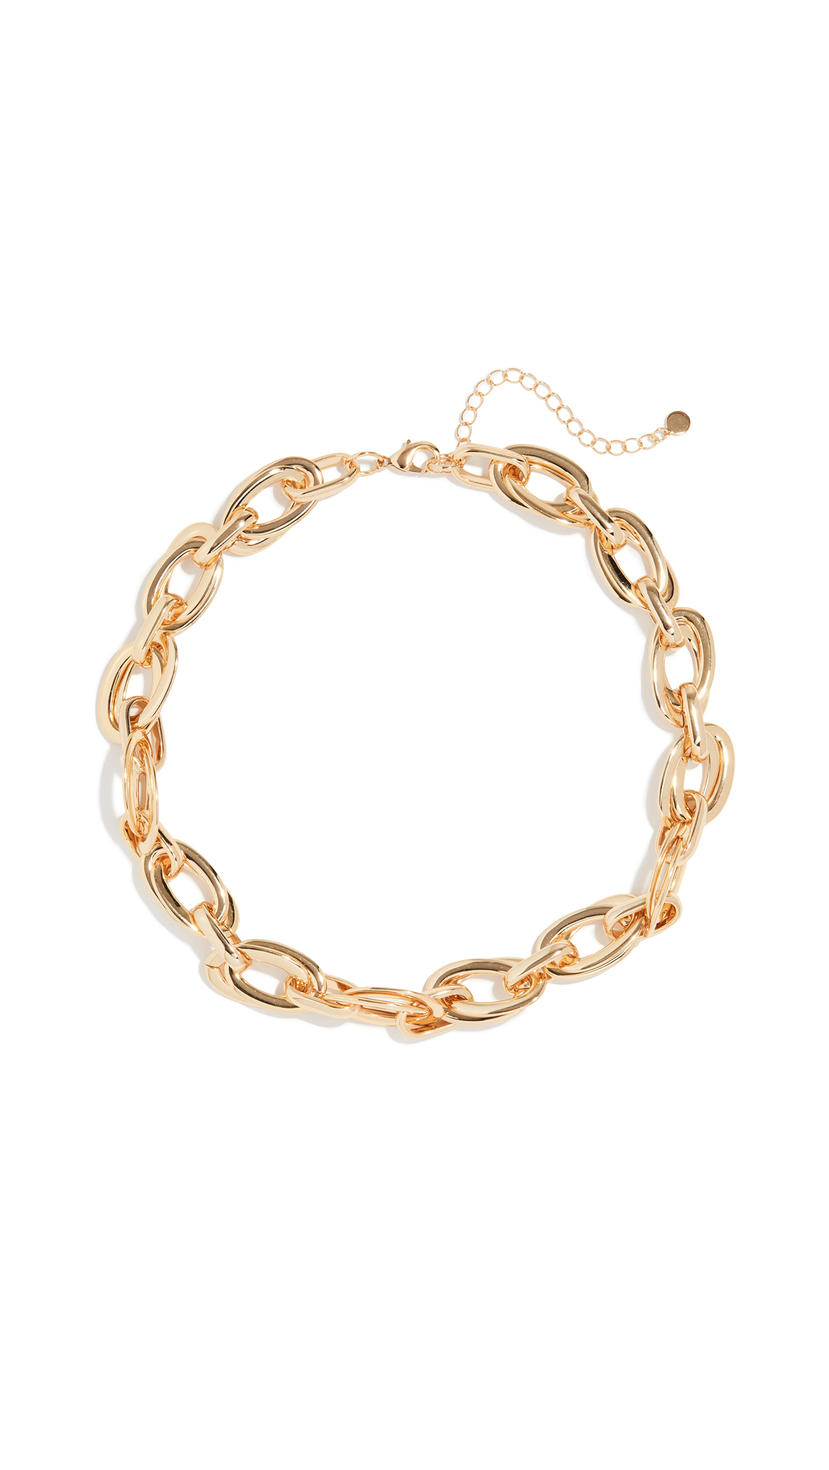 In chains necklace, Dhs257, Jules Smith at Shopbop.com